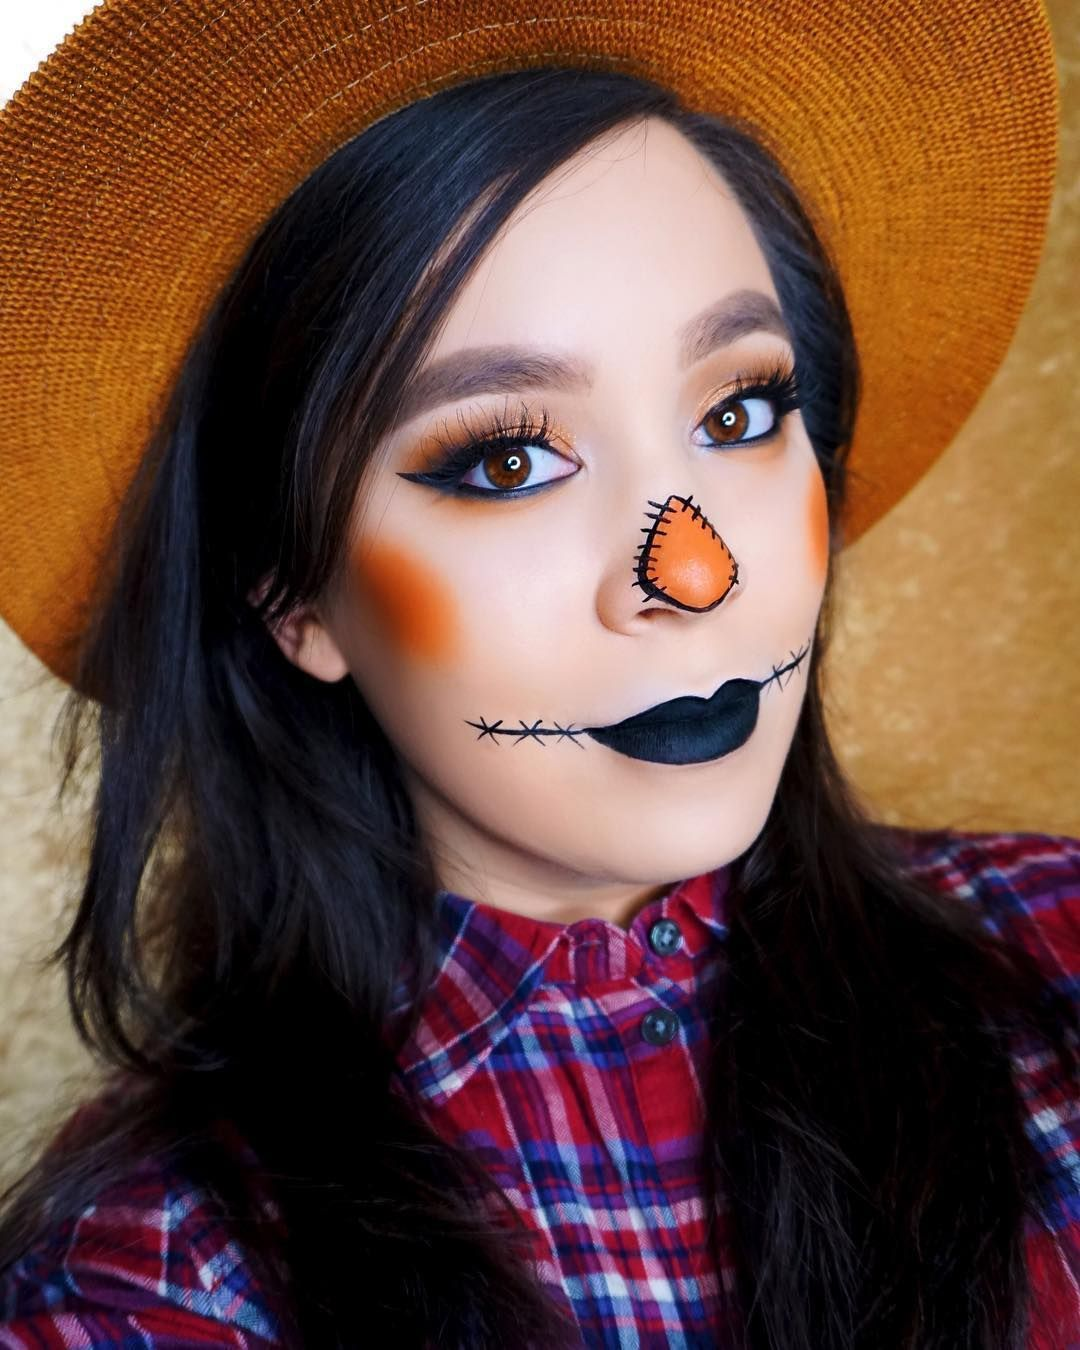 This scarecrow makeup is such a fun idea for an easy, last-minute Halloween costume! #scarecrowmakeup This scarecrow makeup is such a fun idea for an easy, last-minute Halloween costume! #scarecrowmakeup This scarecrow makeup is such a fun idea for an easy, last-minute Halloween costume! #scarecrowmakeup This scarecrow makeup is such a fun idea for an easy, last-minute Halloween costume! #scarecrowcostumediy